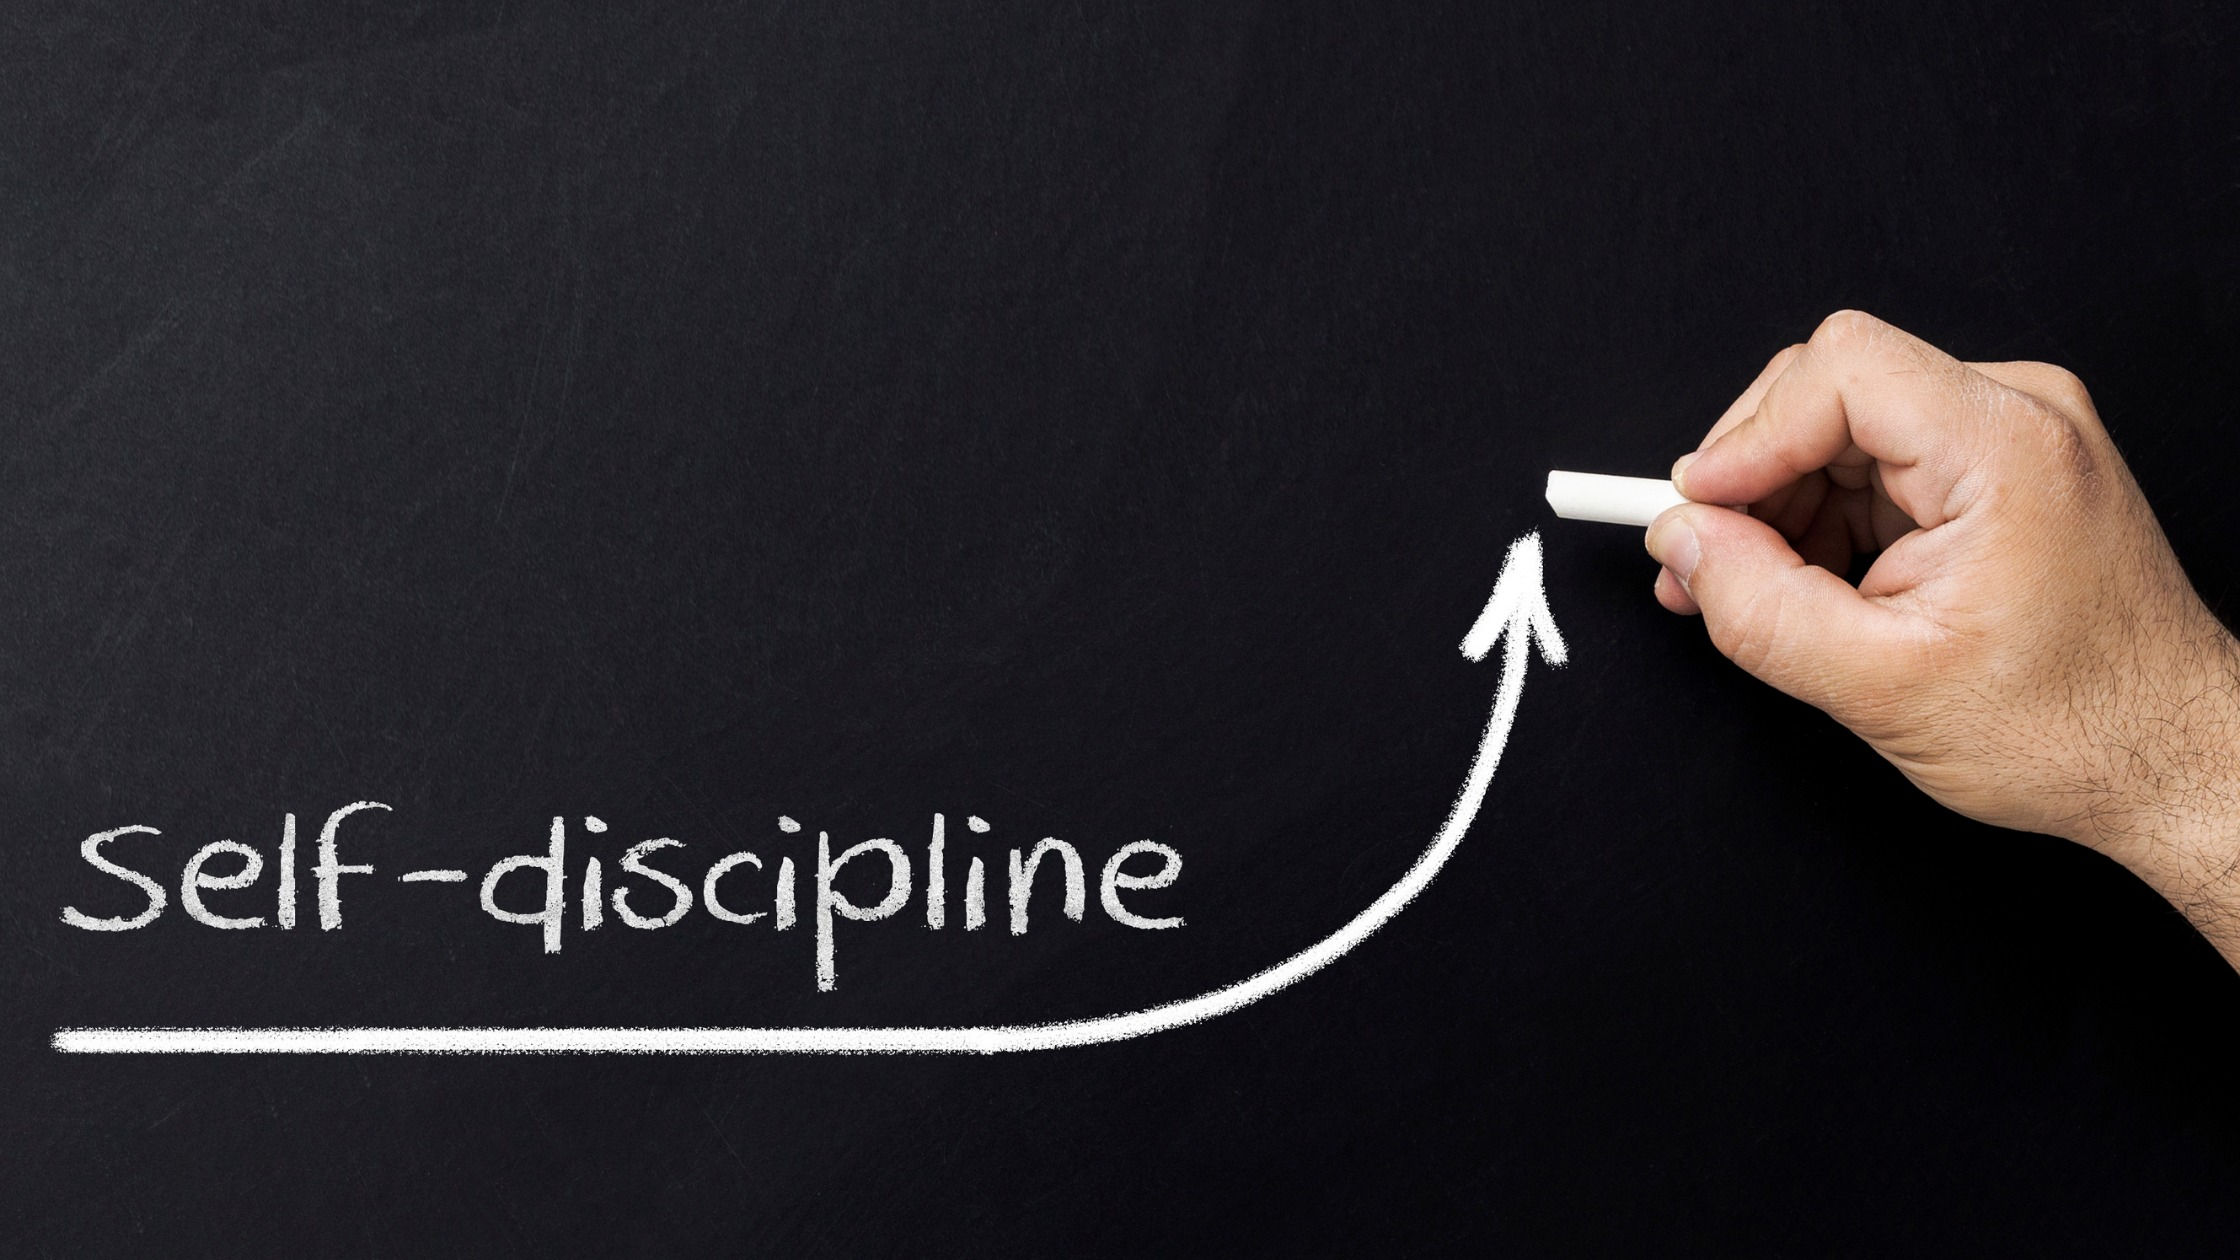 7 Crucial Things To Look At Developing Your Self-Discipline